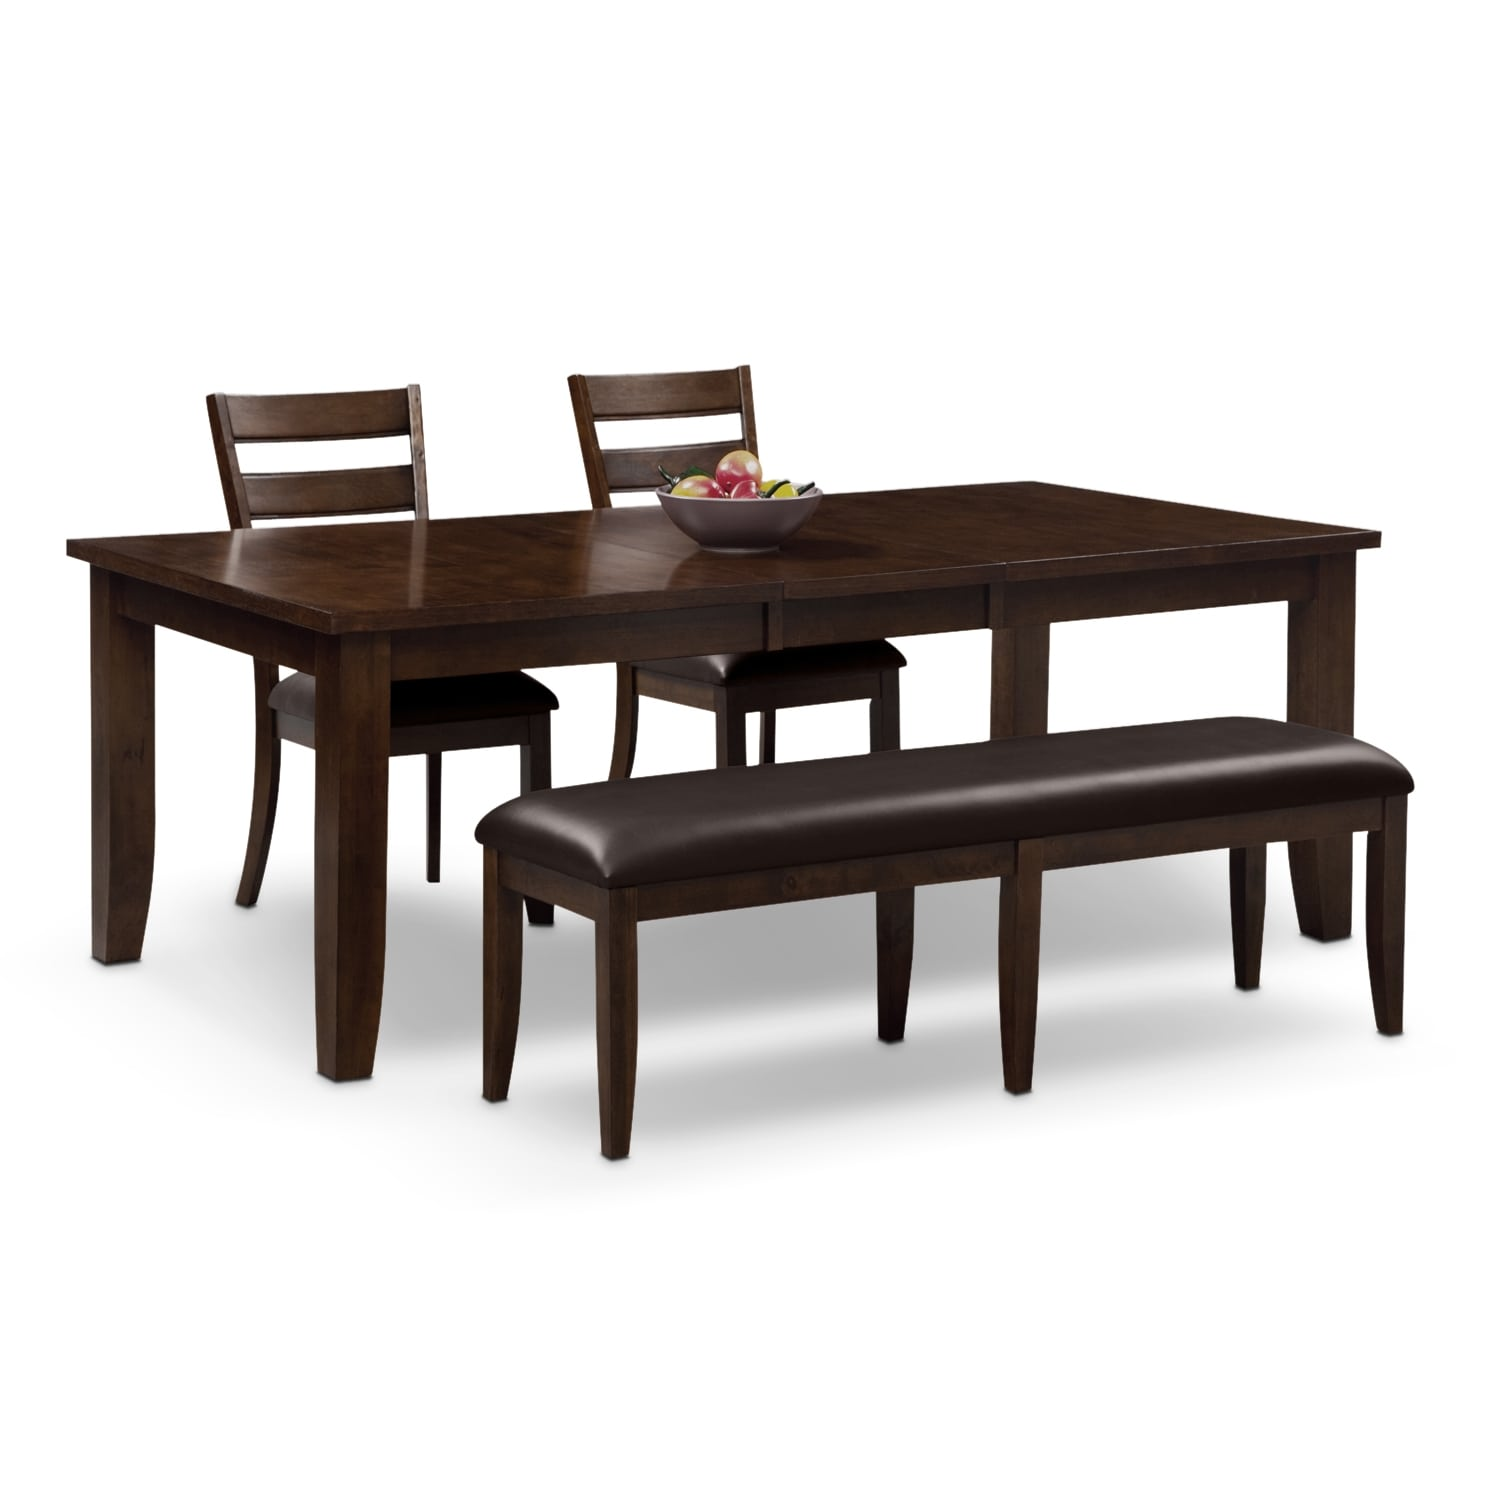 Charmant Dining Room Furniture   Abaco Table, 2 Chairs And Bench   Brown